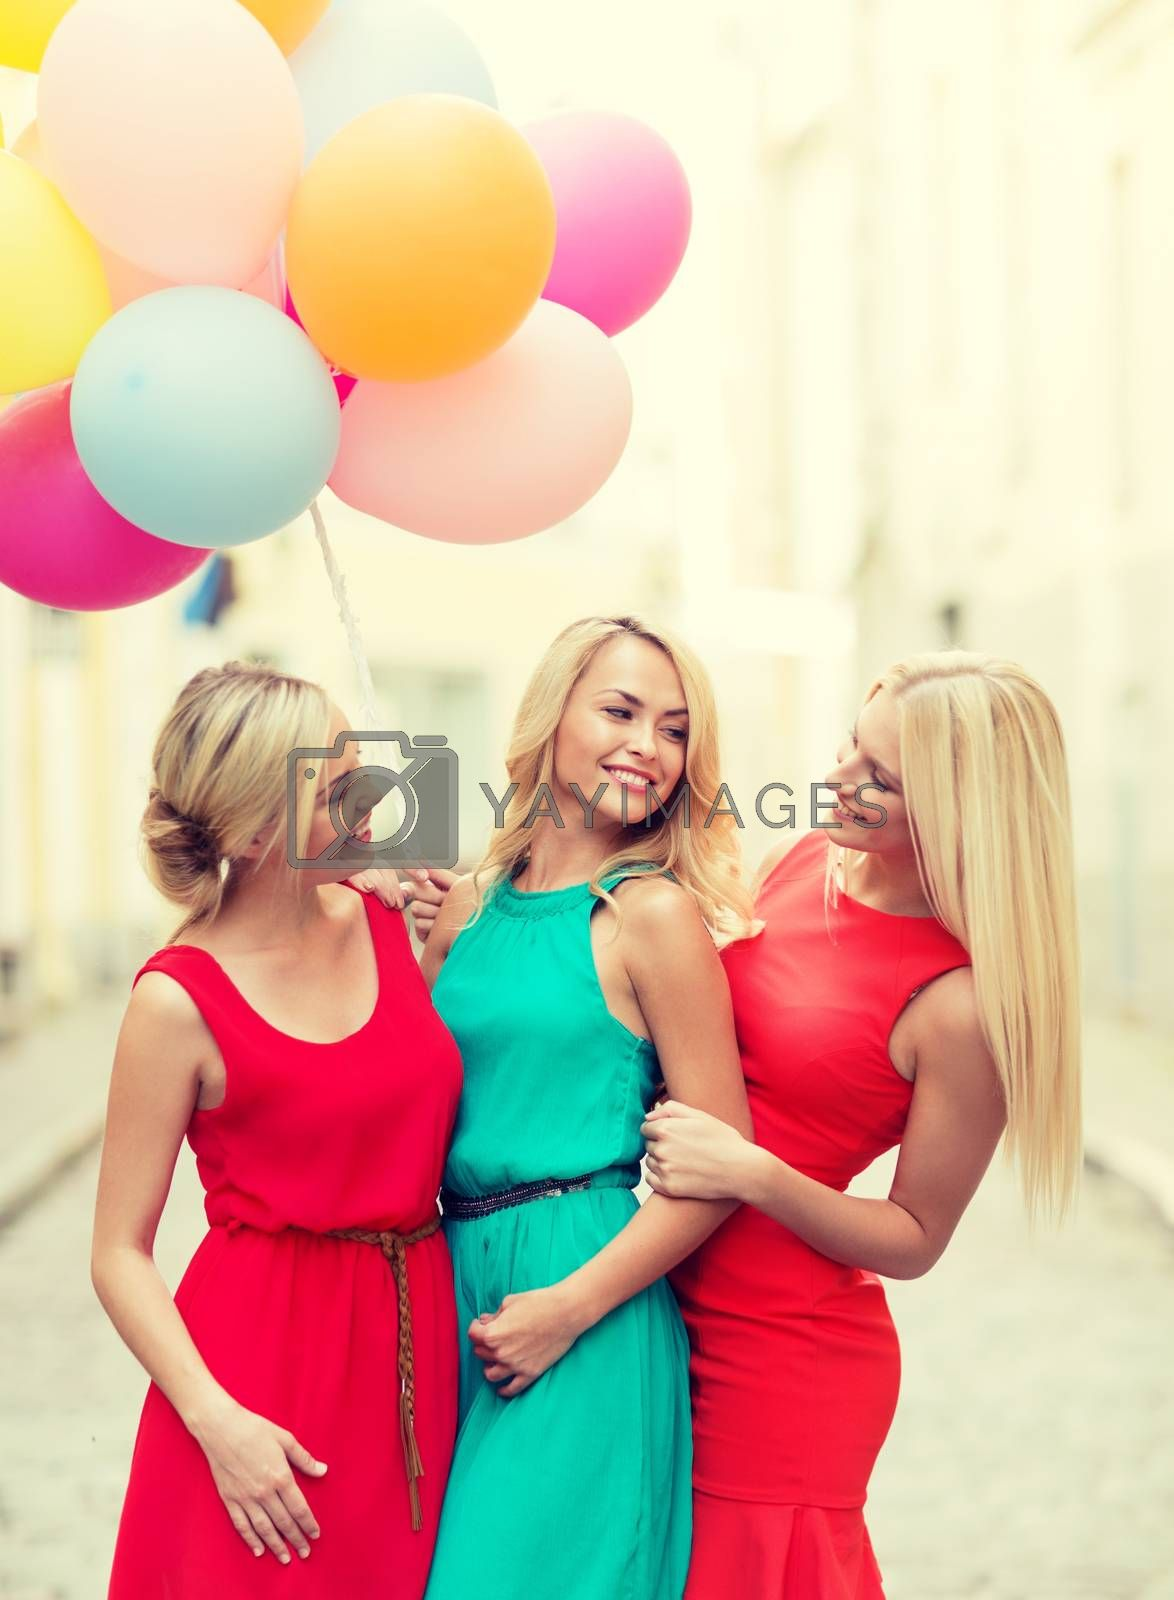 celebration and happy people concept - beautiful girls with colorful balloons in the city